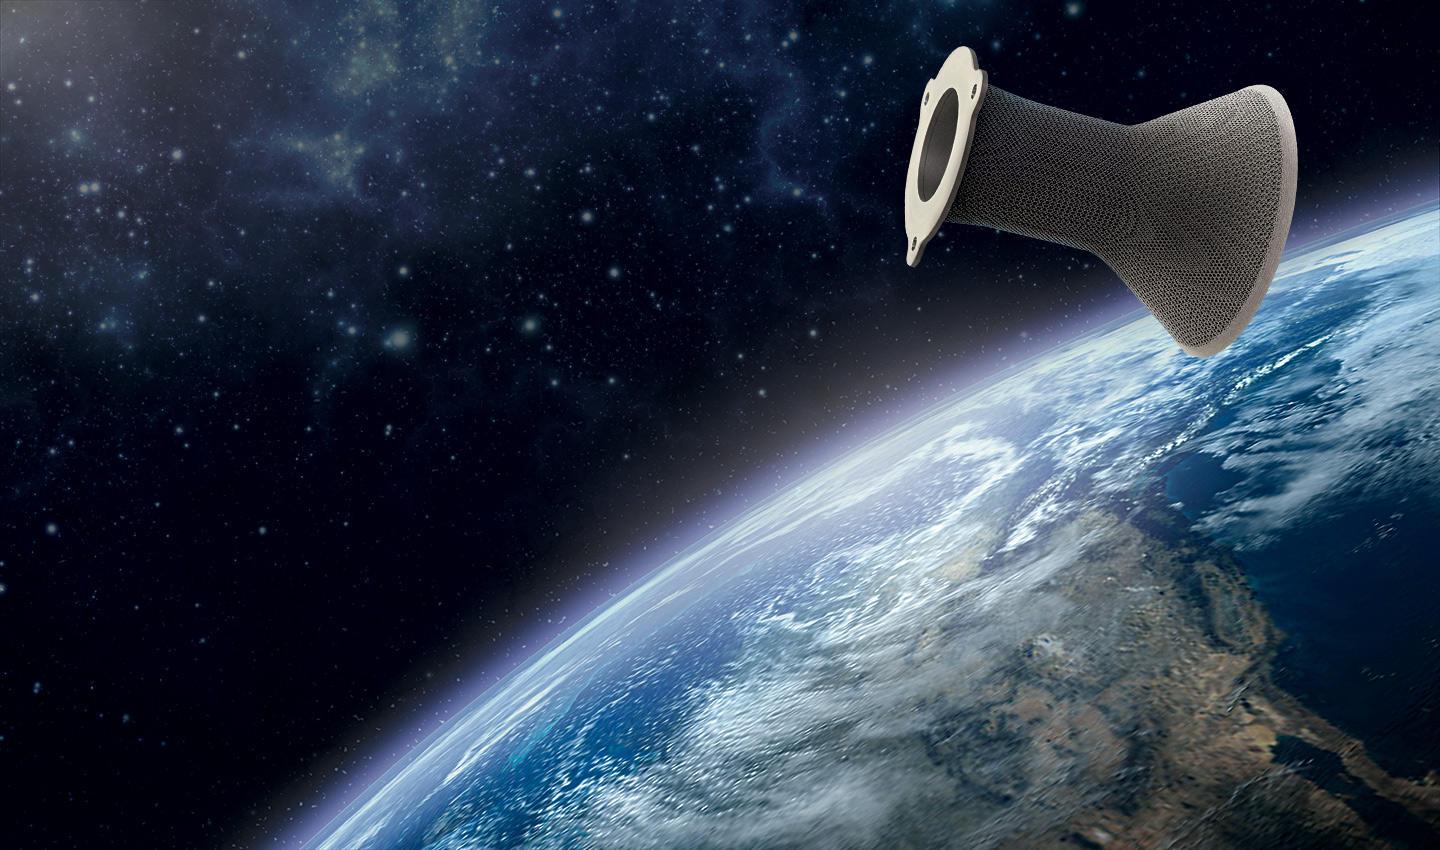 cs-european-space-agency-investigates-additive-manufacturing-DMP-parts-for-in-space-satellite-engines-topbanner